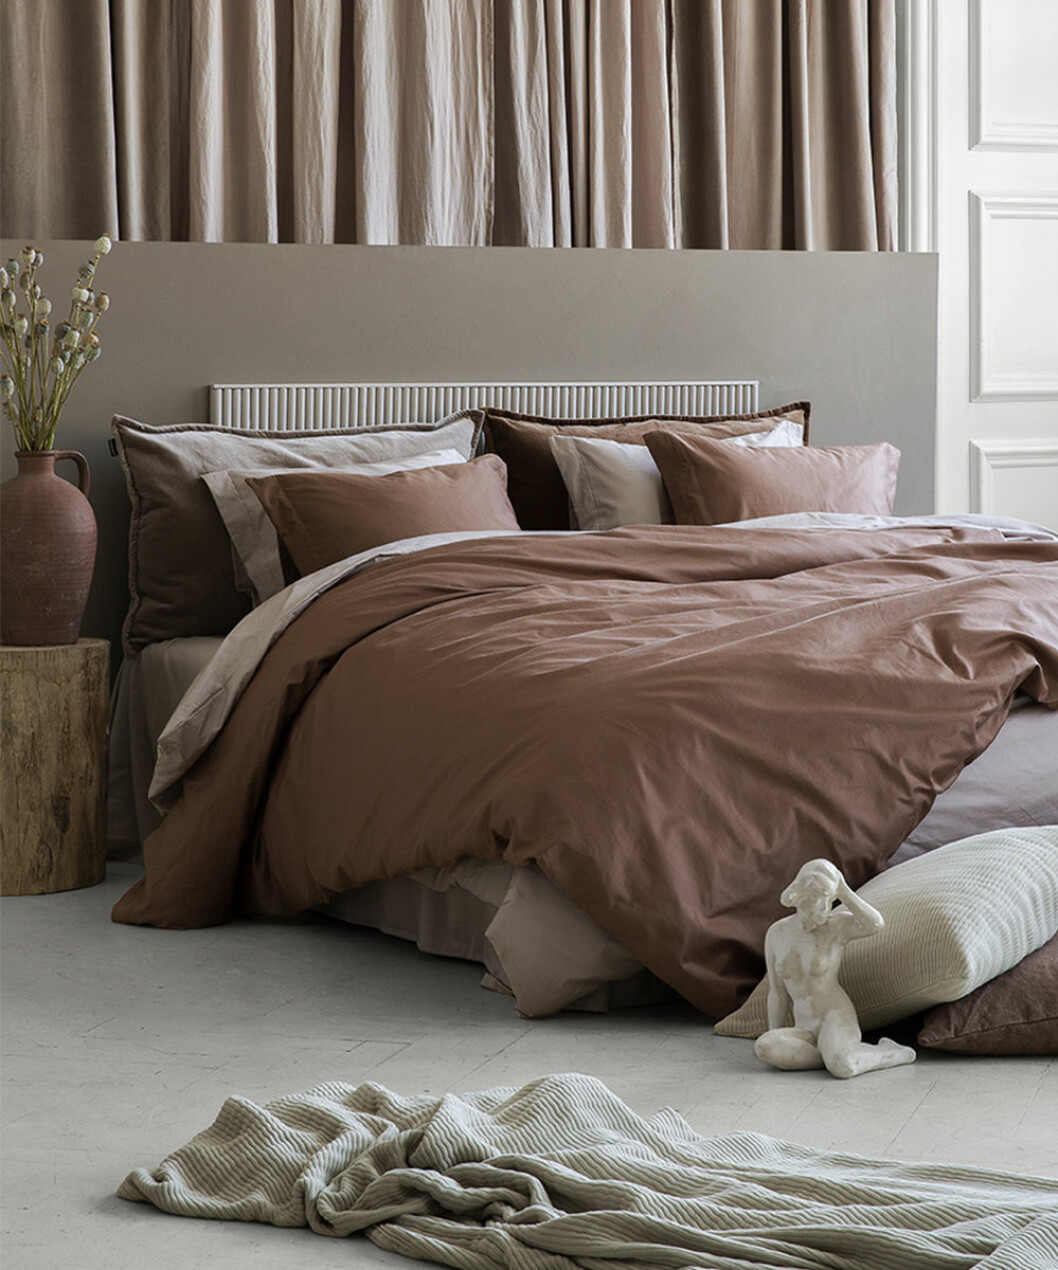 Granits premium collection med muted tones